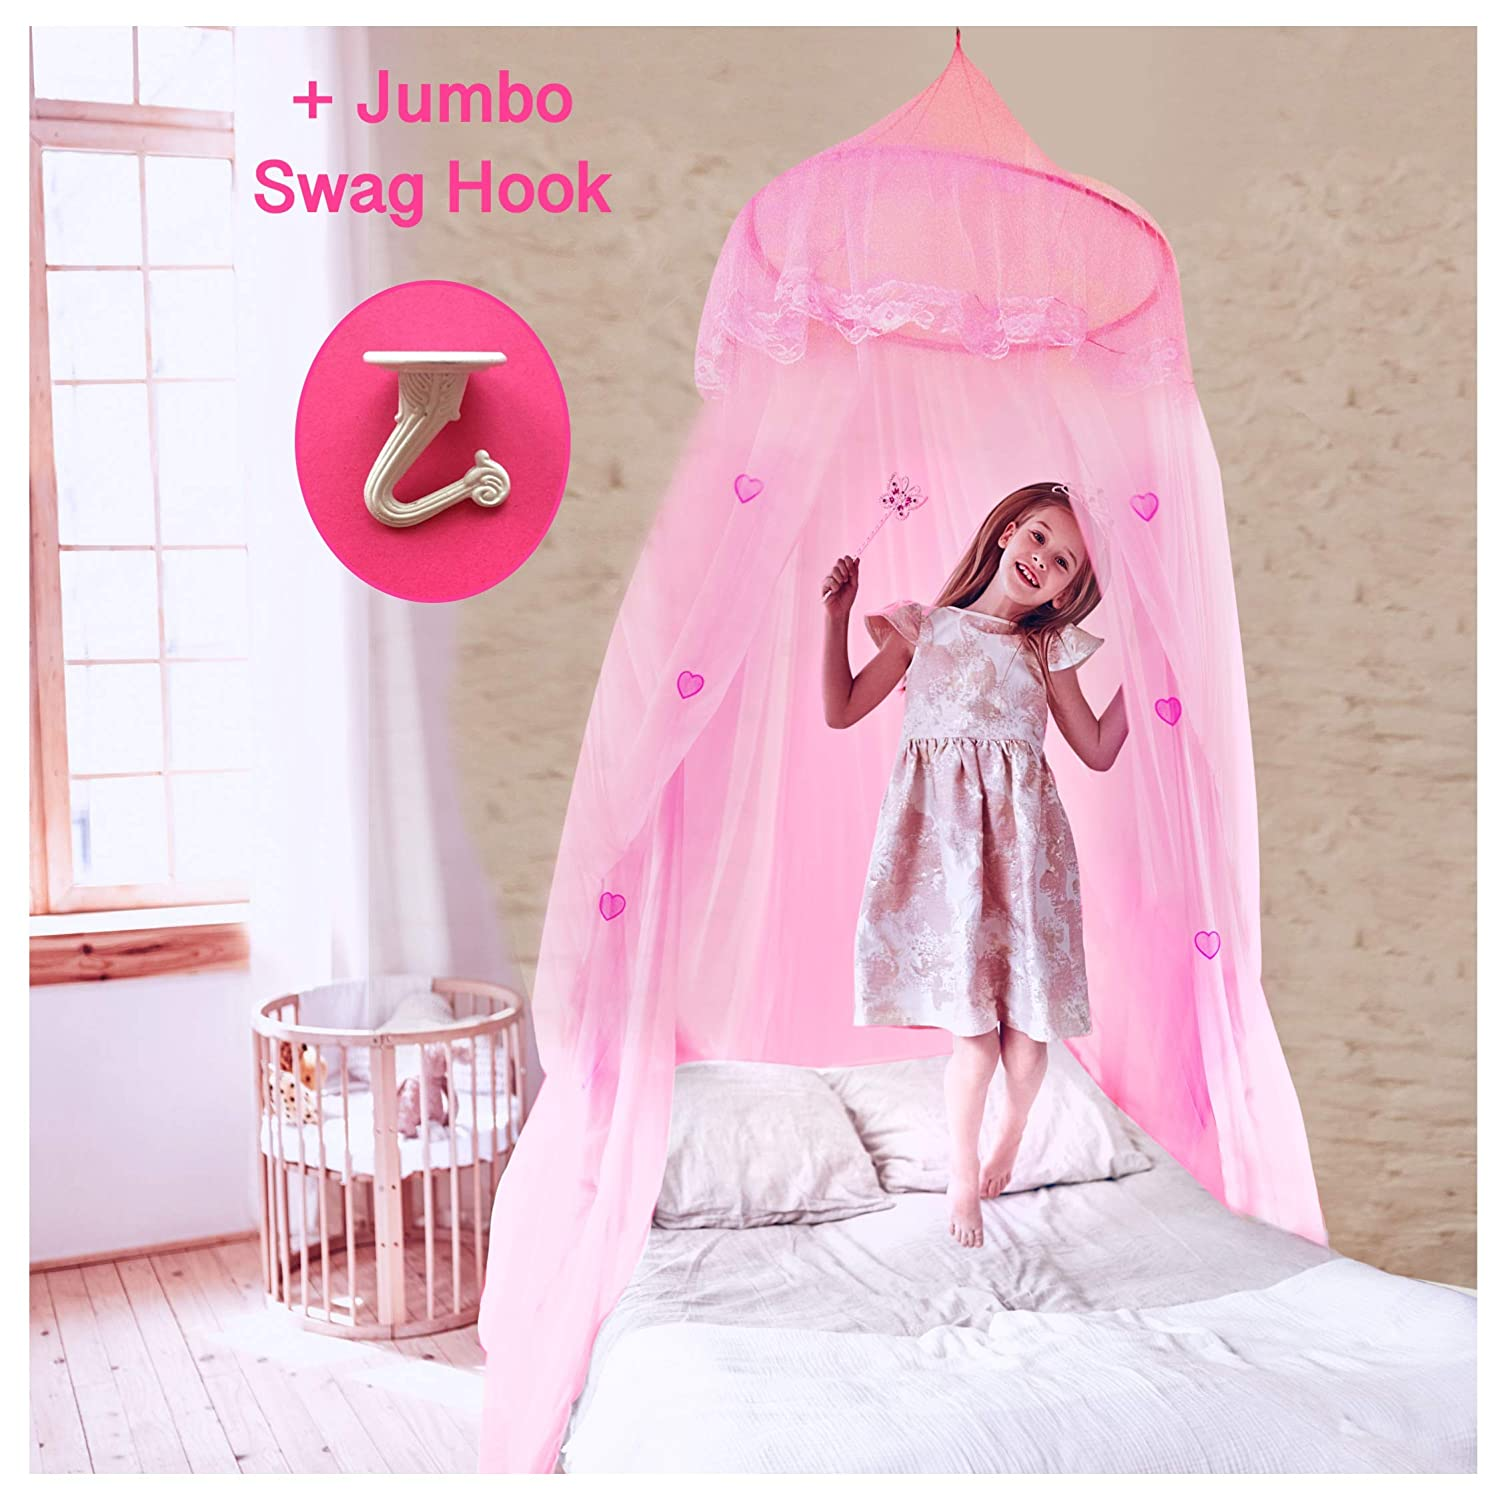 EVEN NATURALS Princess Bed Canopy for Girls, with Lace Dome & Hearts (Easy Hanging System), Mosquito Netting for Crib up to Twin Size Girls Bed